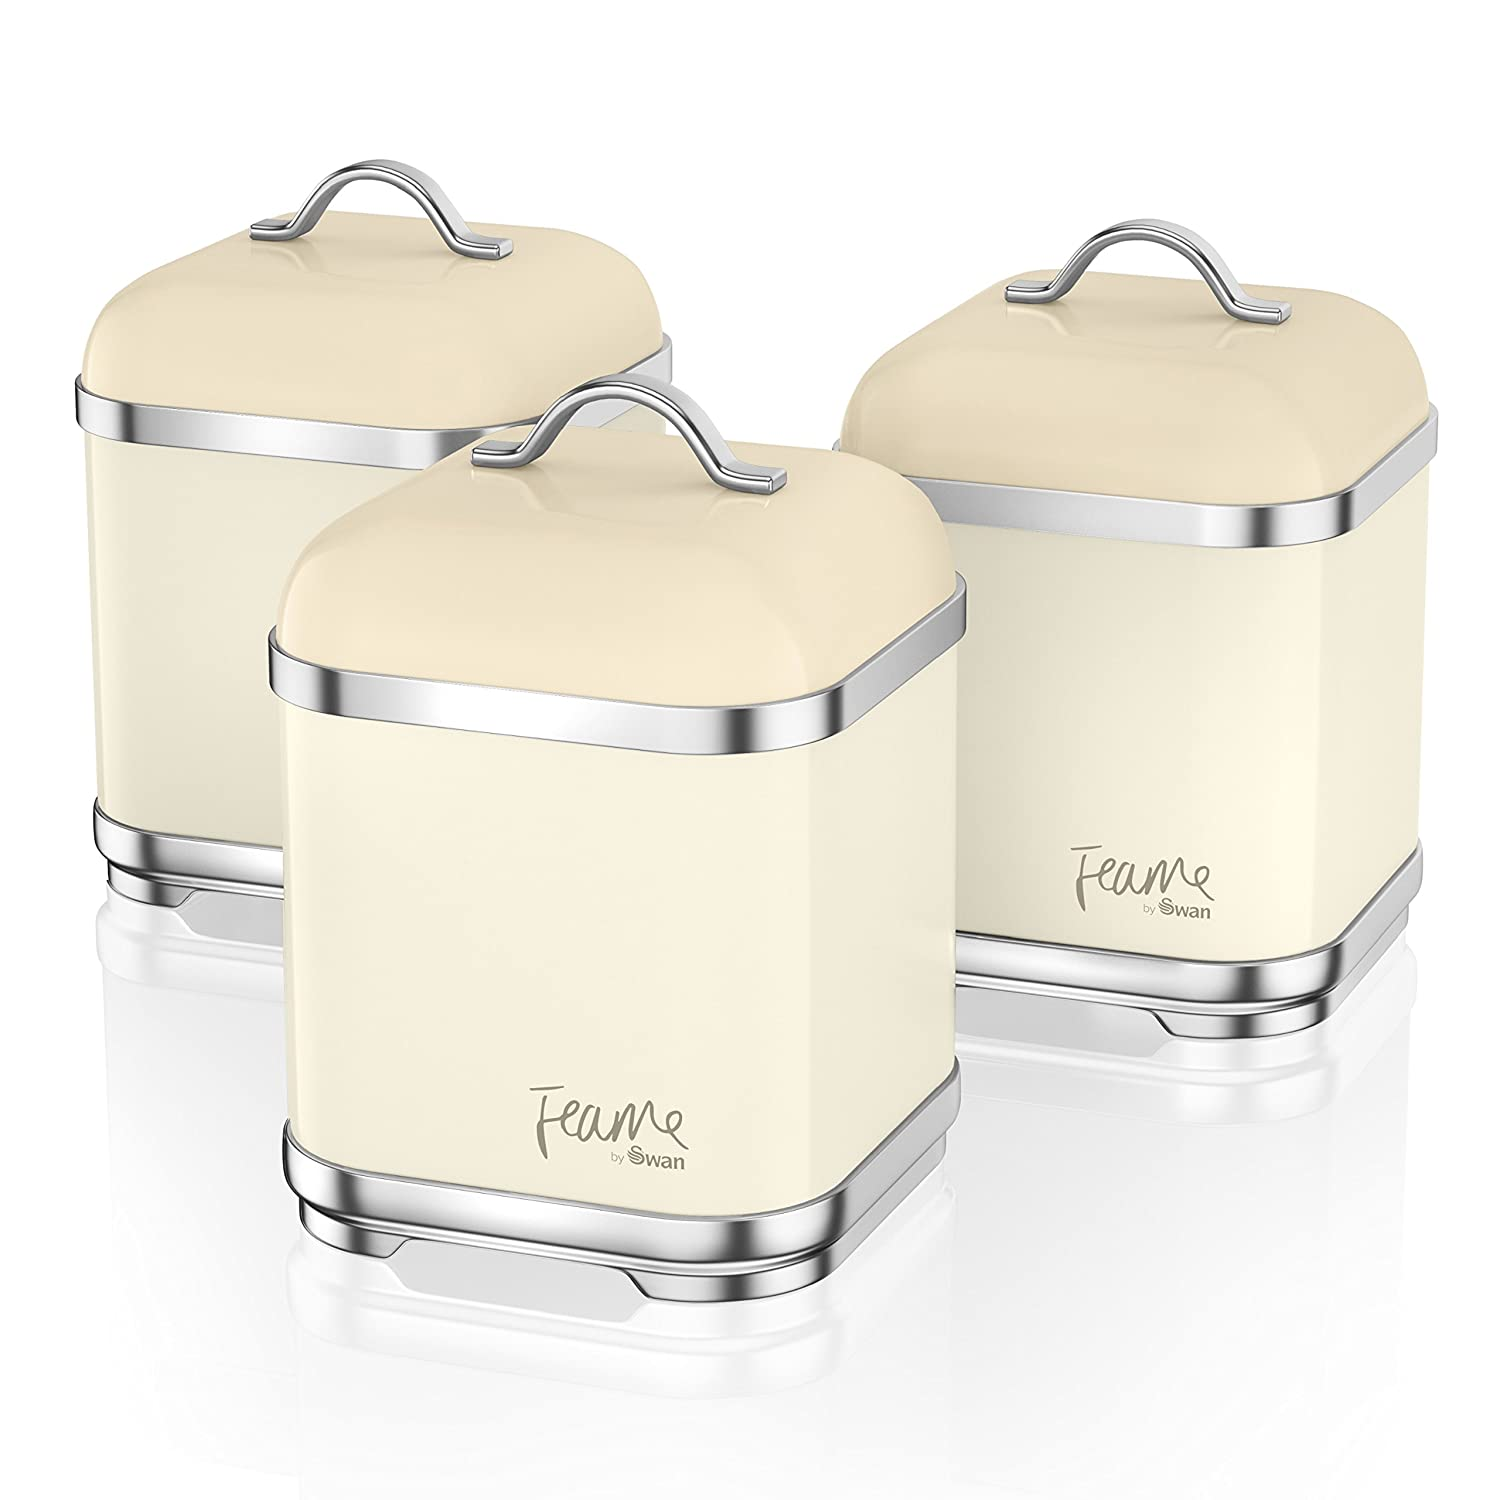 Amazon.com: Swan Fearne Kitchen Storage Canisters, Iron ...